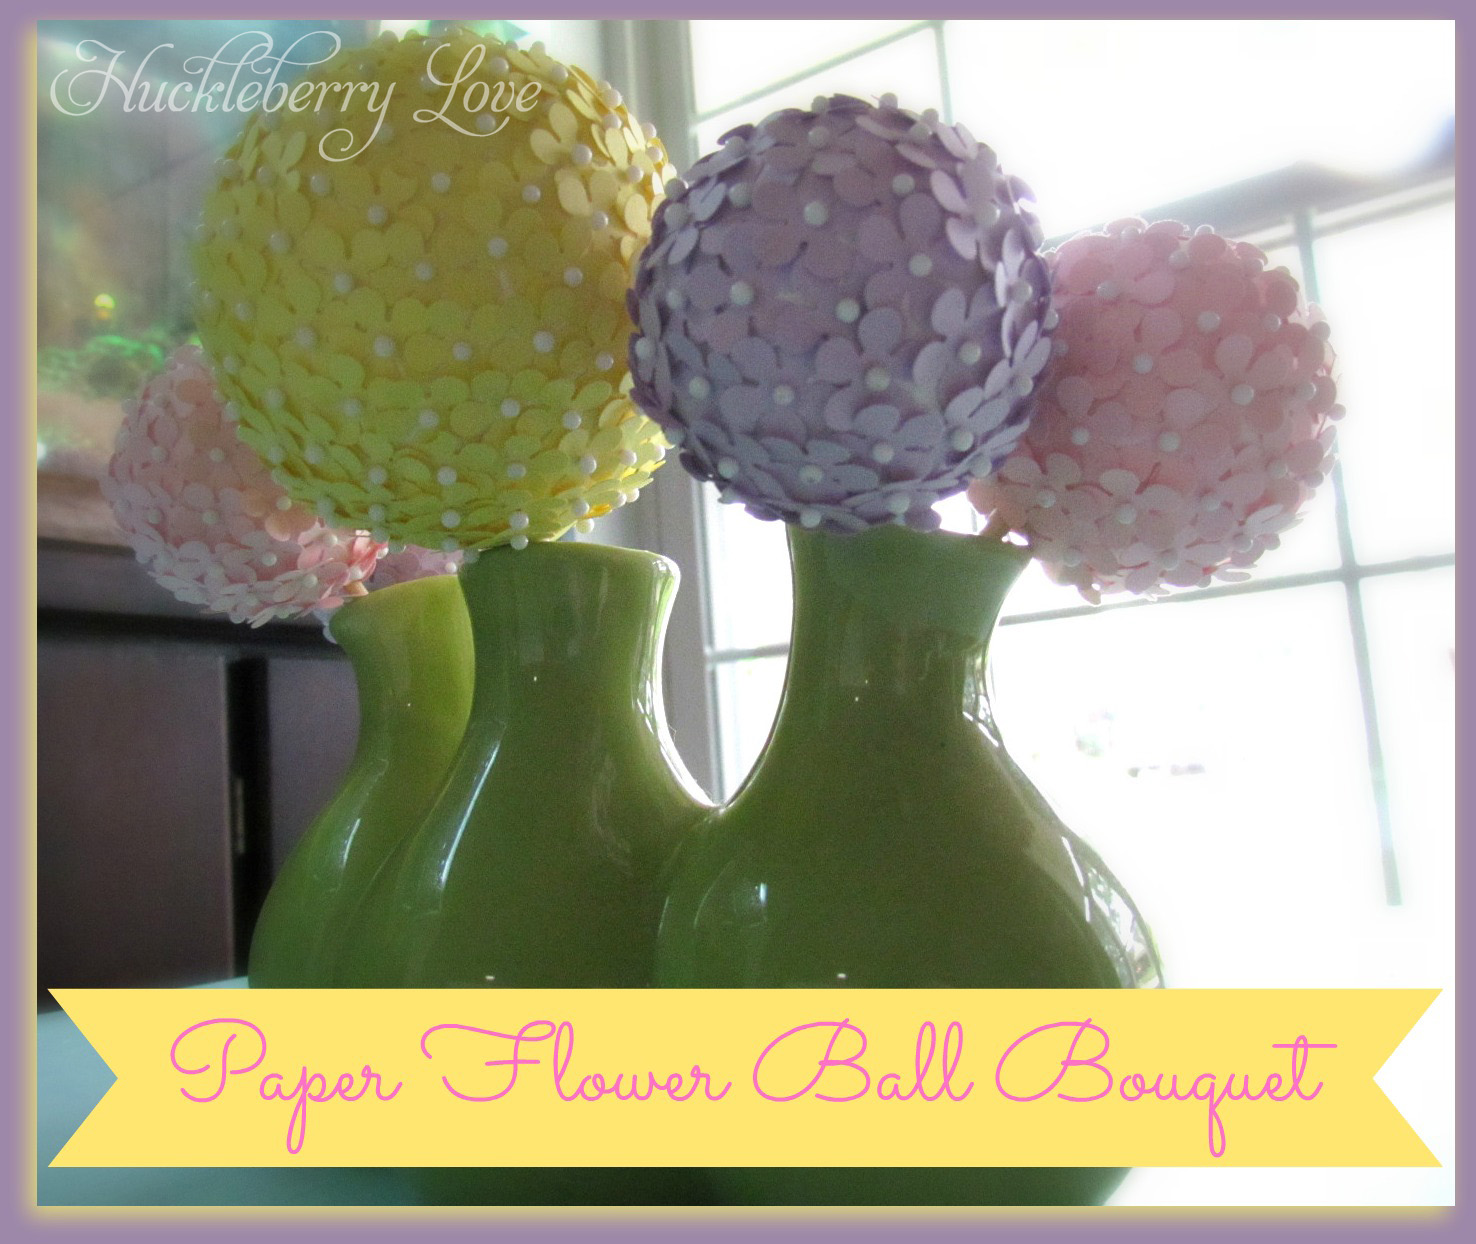 Huckleberry Love: Paper Flower Ball Bouquet {Tutorial}